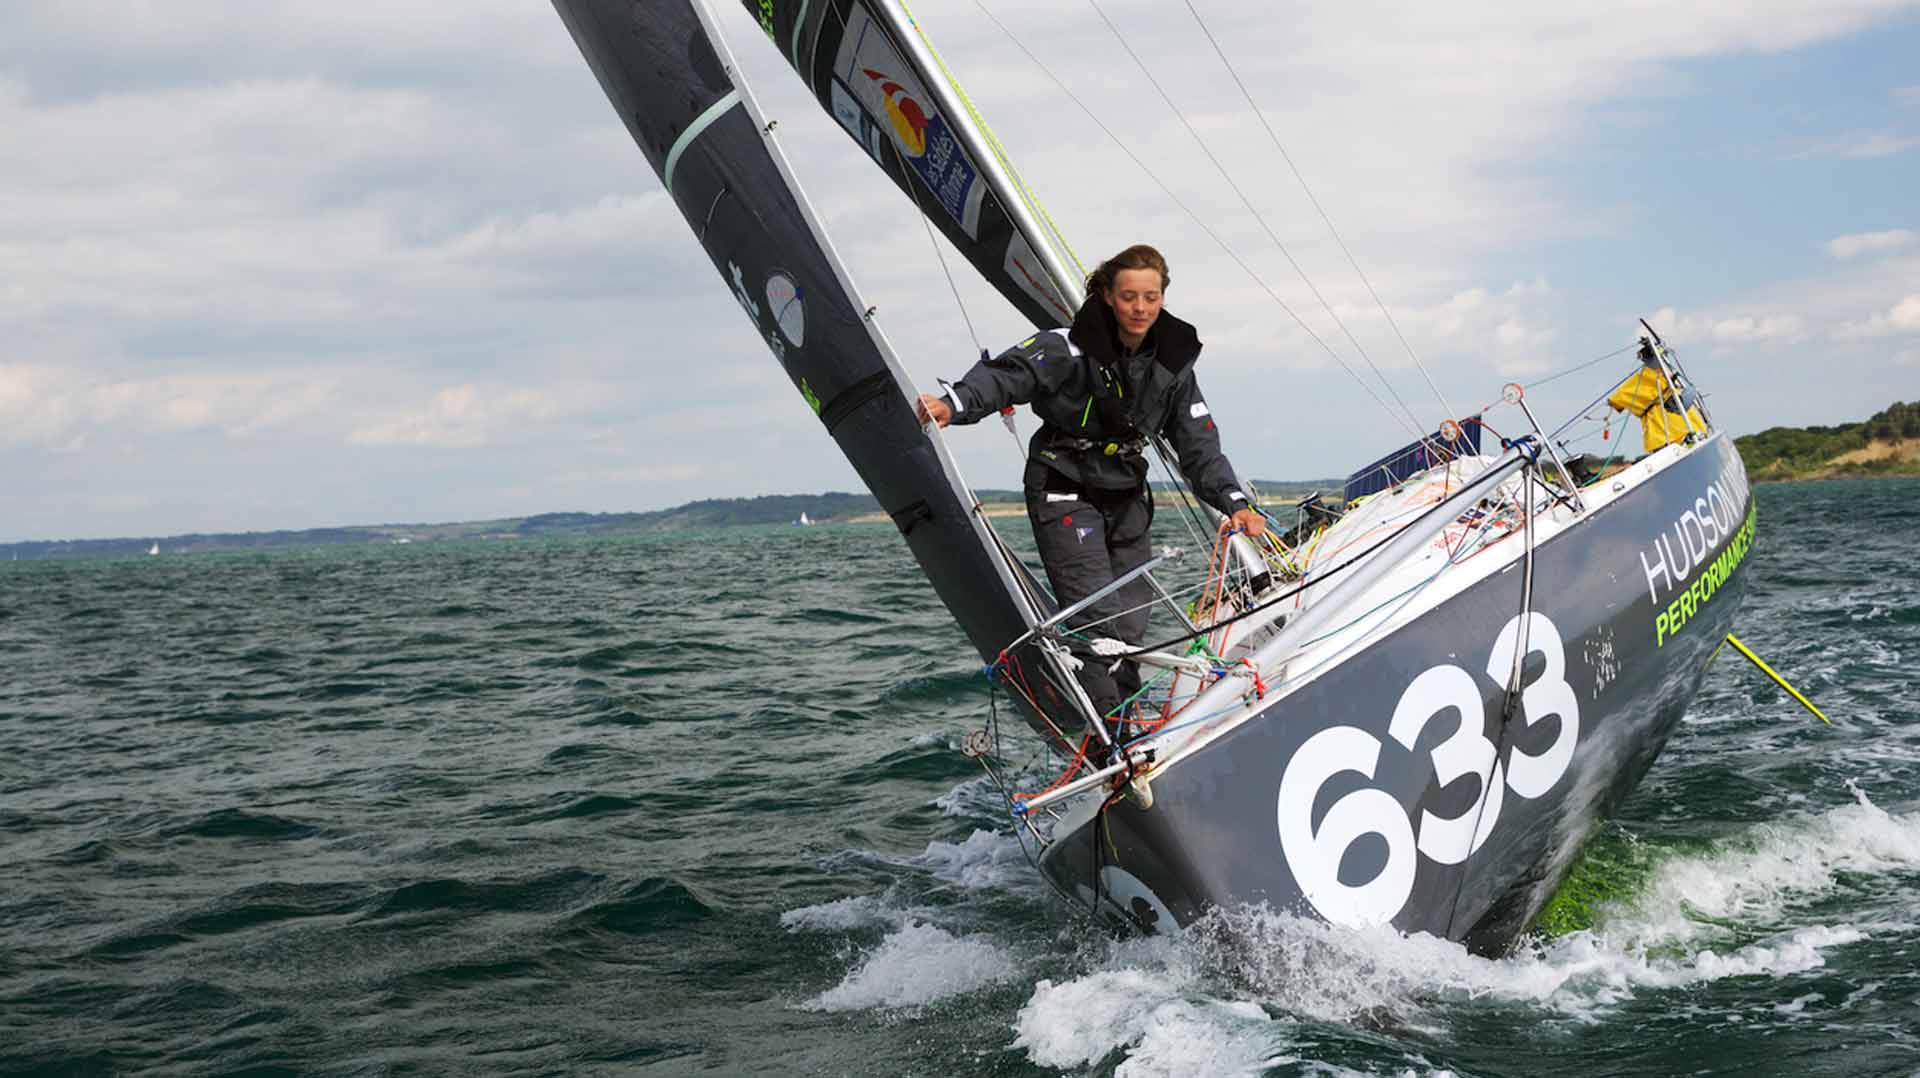 Sailing shorthanded and alone: Lizzy is a true master of her boat.